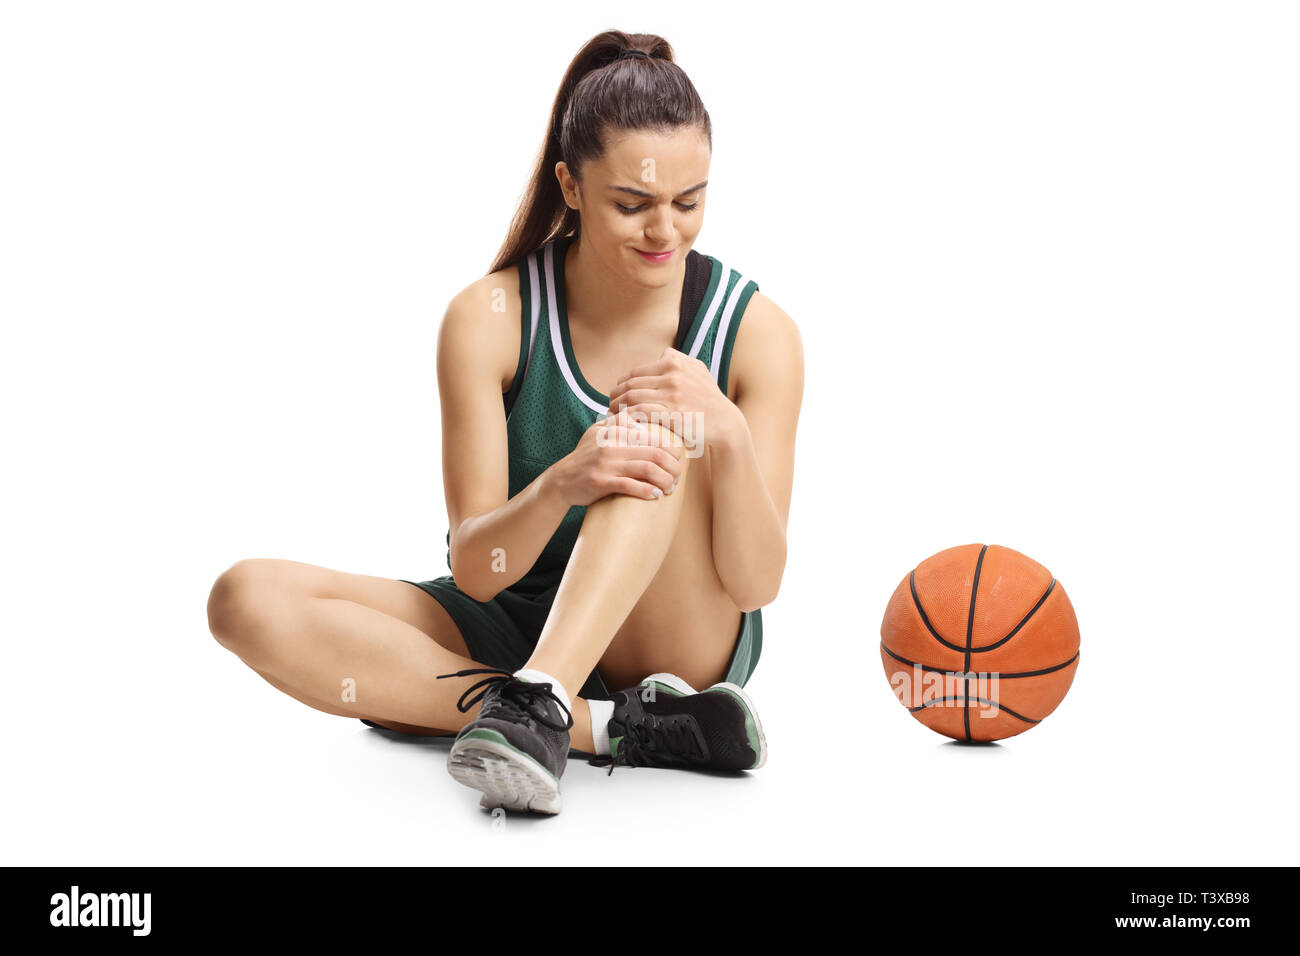 Young female basketball player sitting on a floor and holding her painful knee isolated on white background - Stock Image